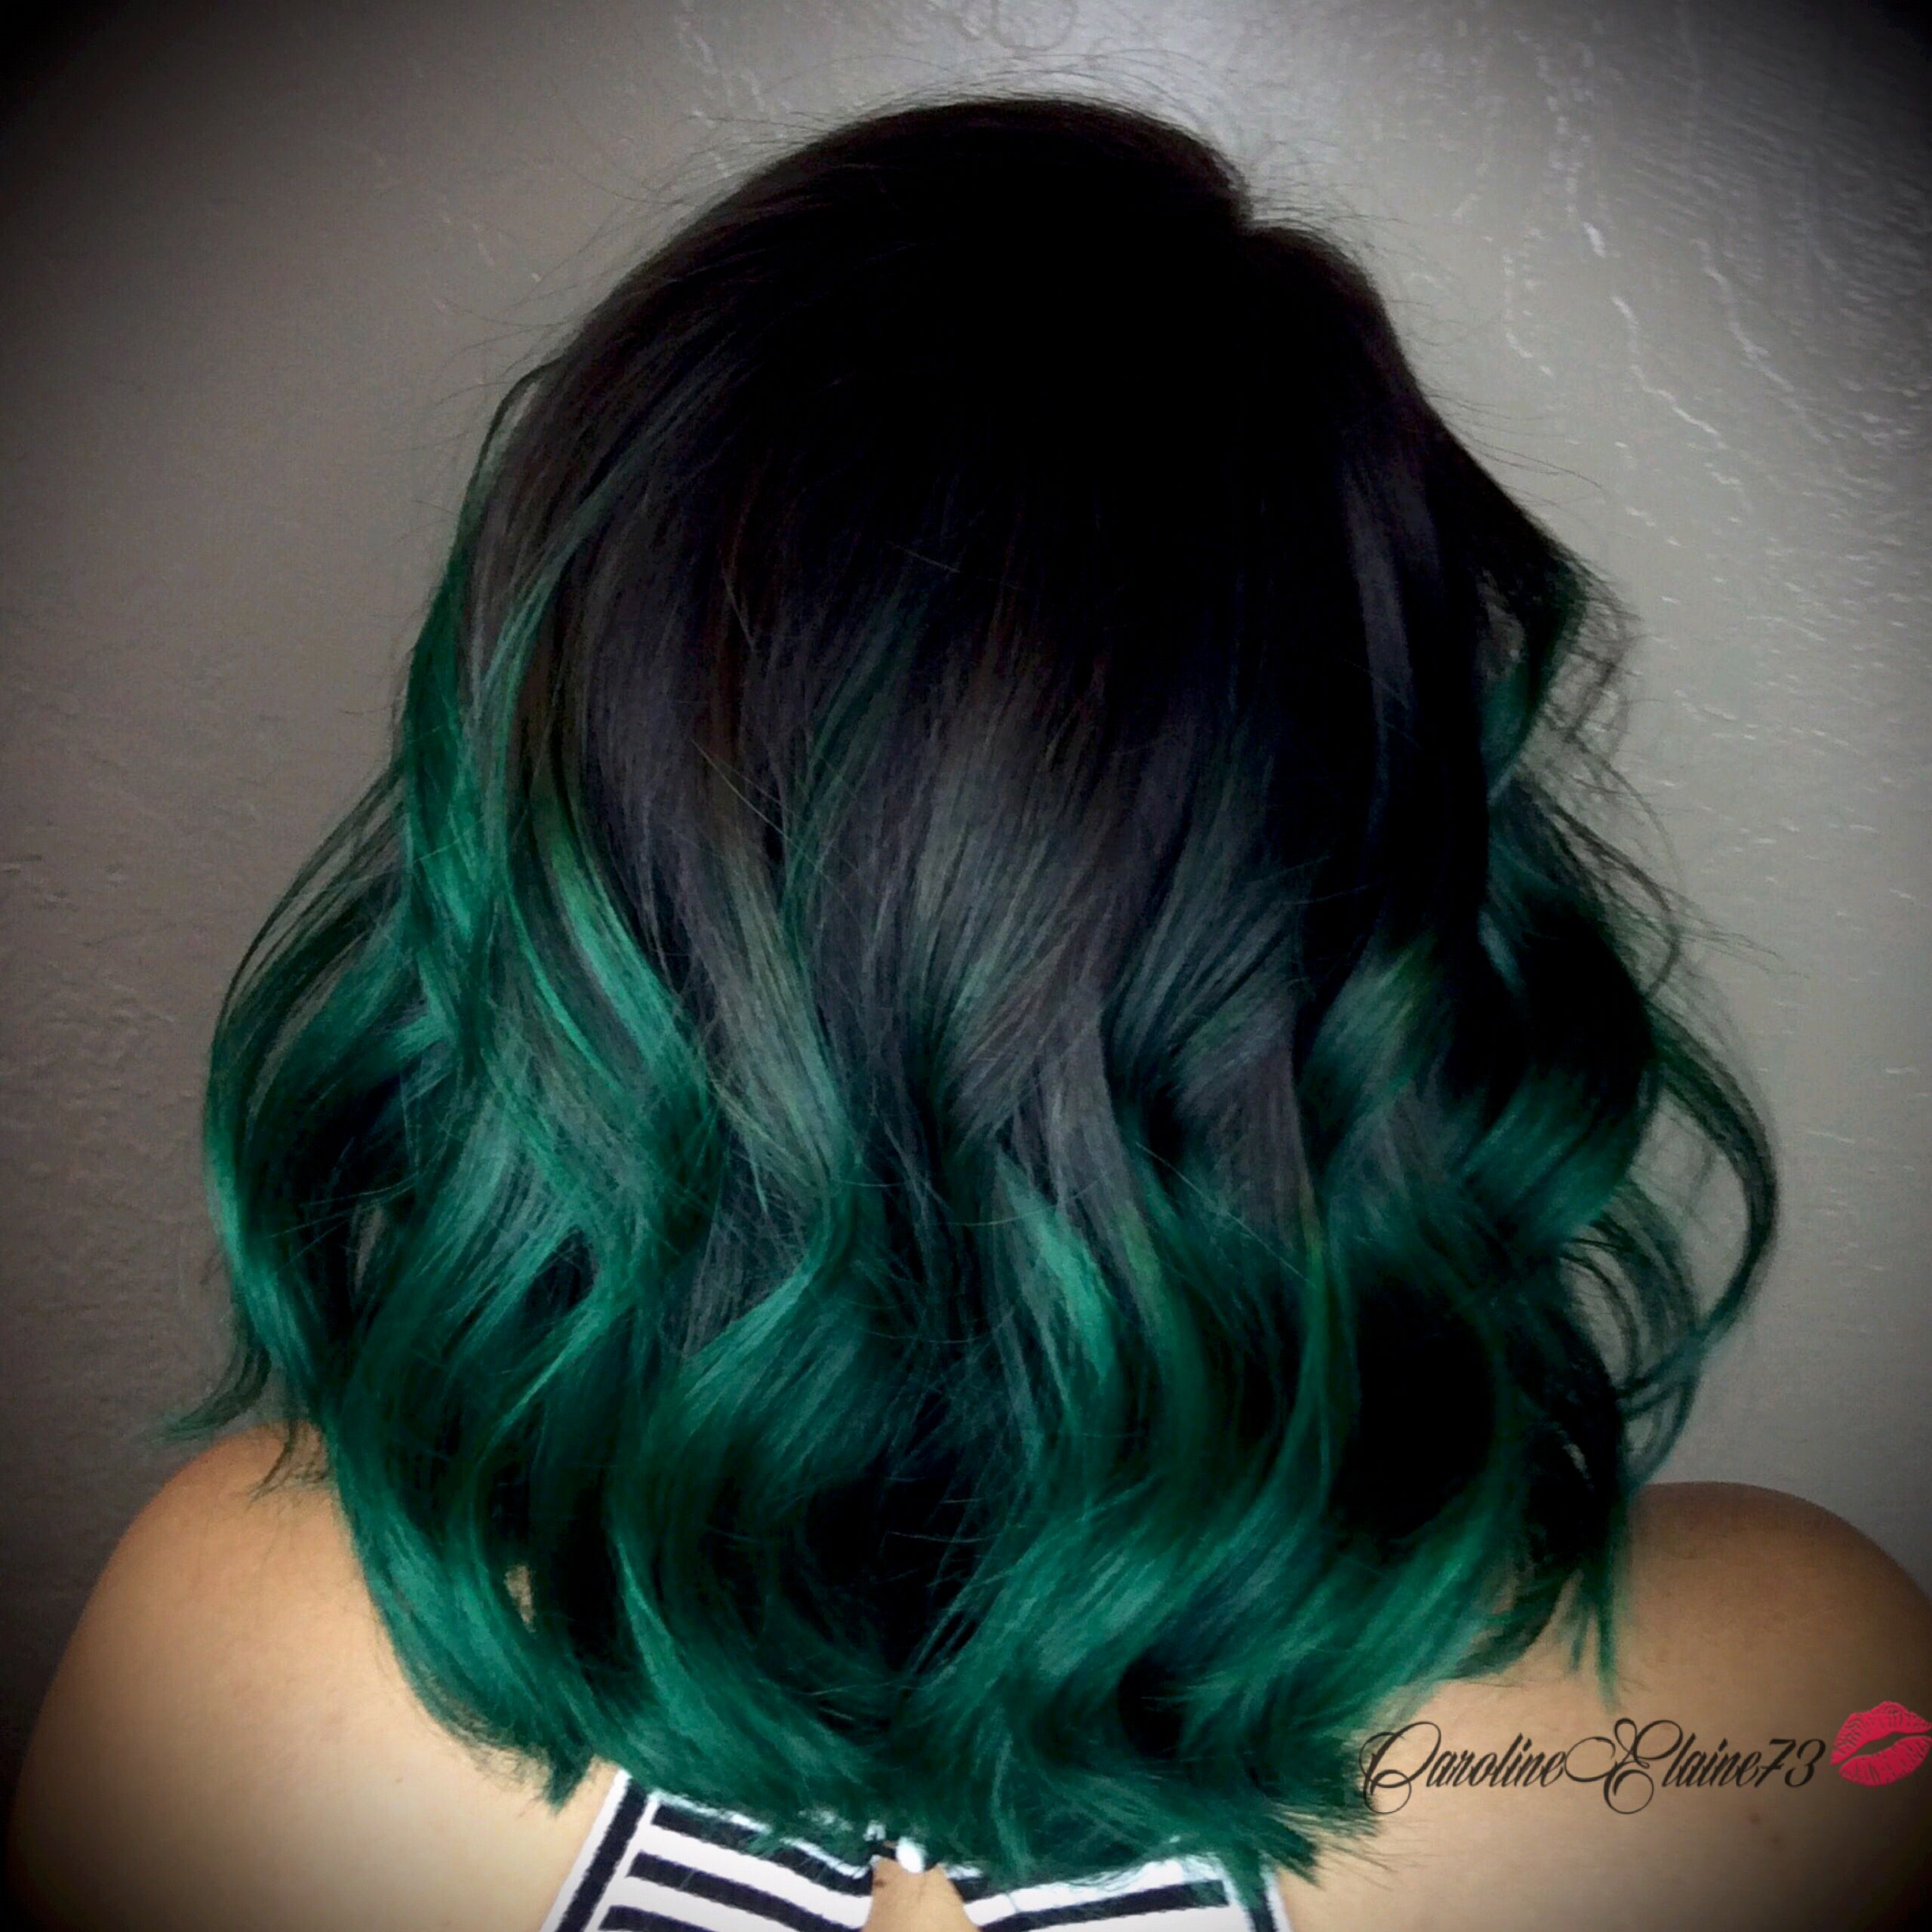 Emerald Green Ombre Hair This But Pulled Through Higher And Not